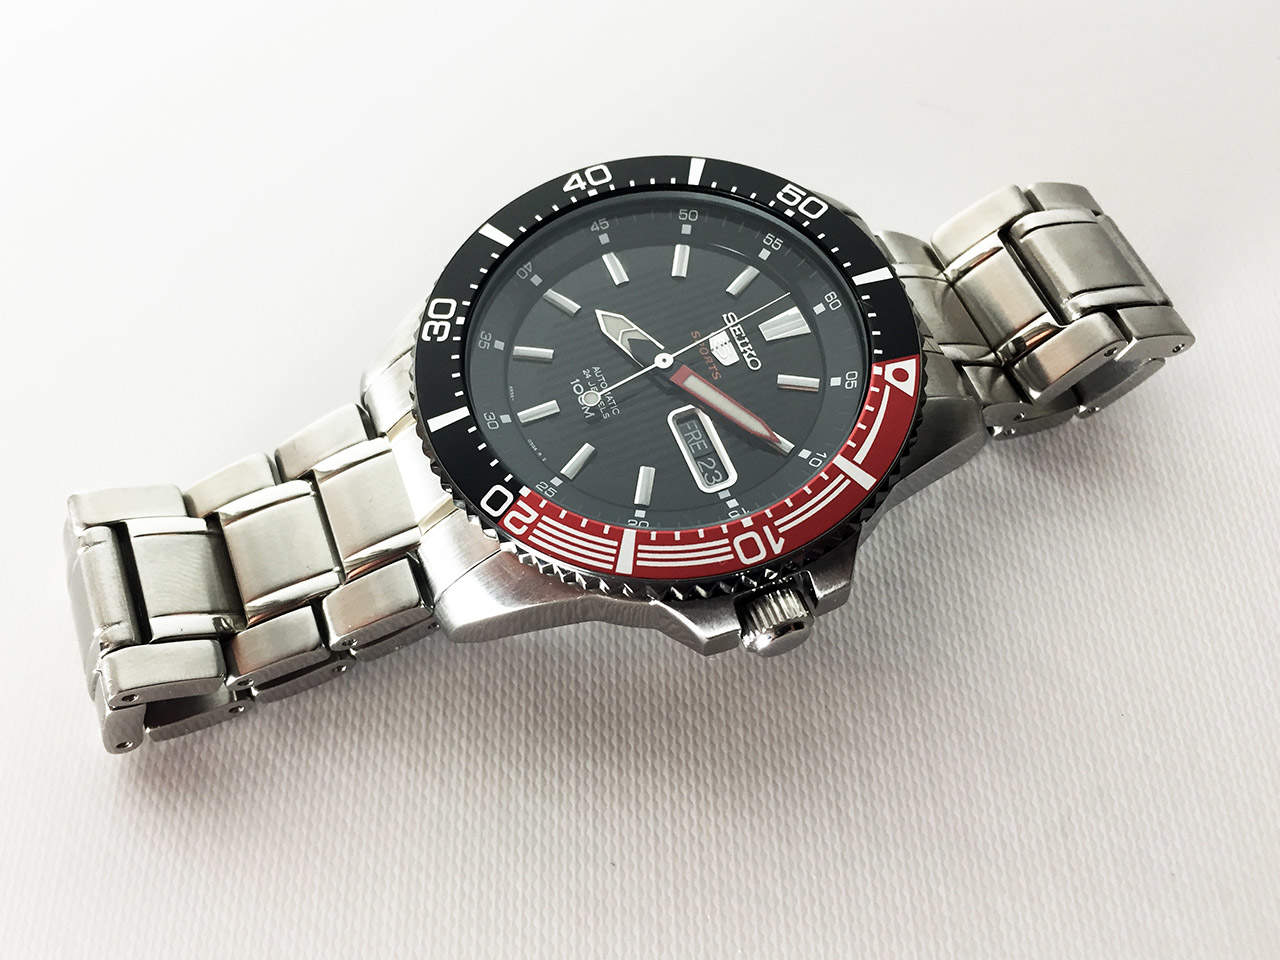 The Seiko 5 is an excellent price-quality ratio diving watch.